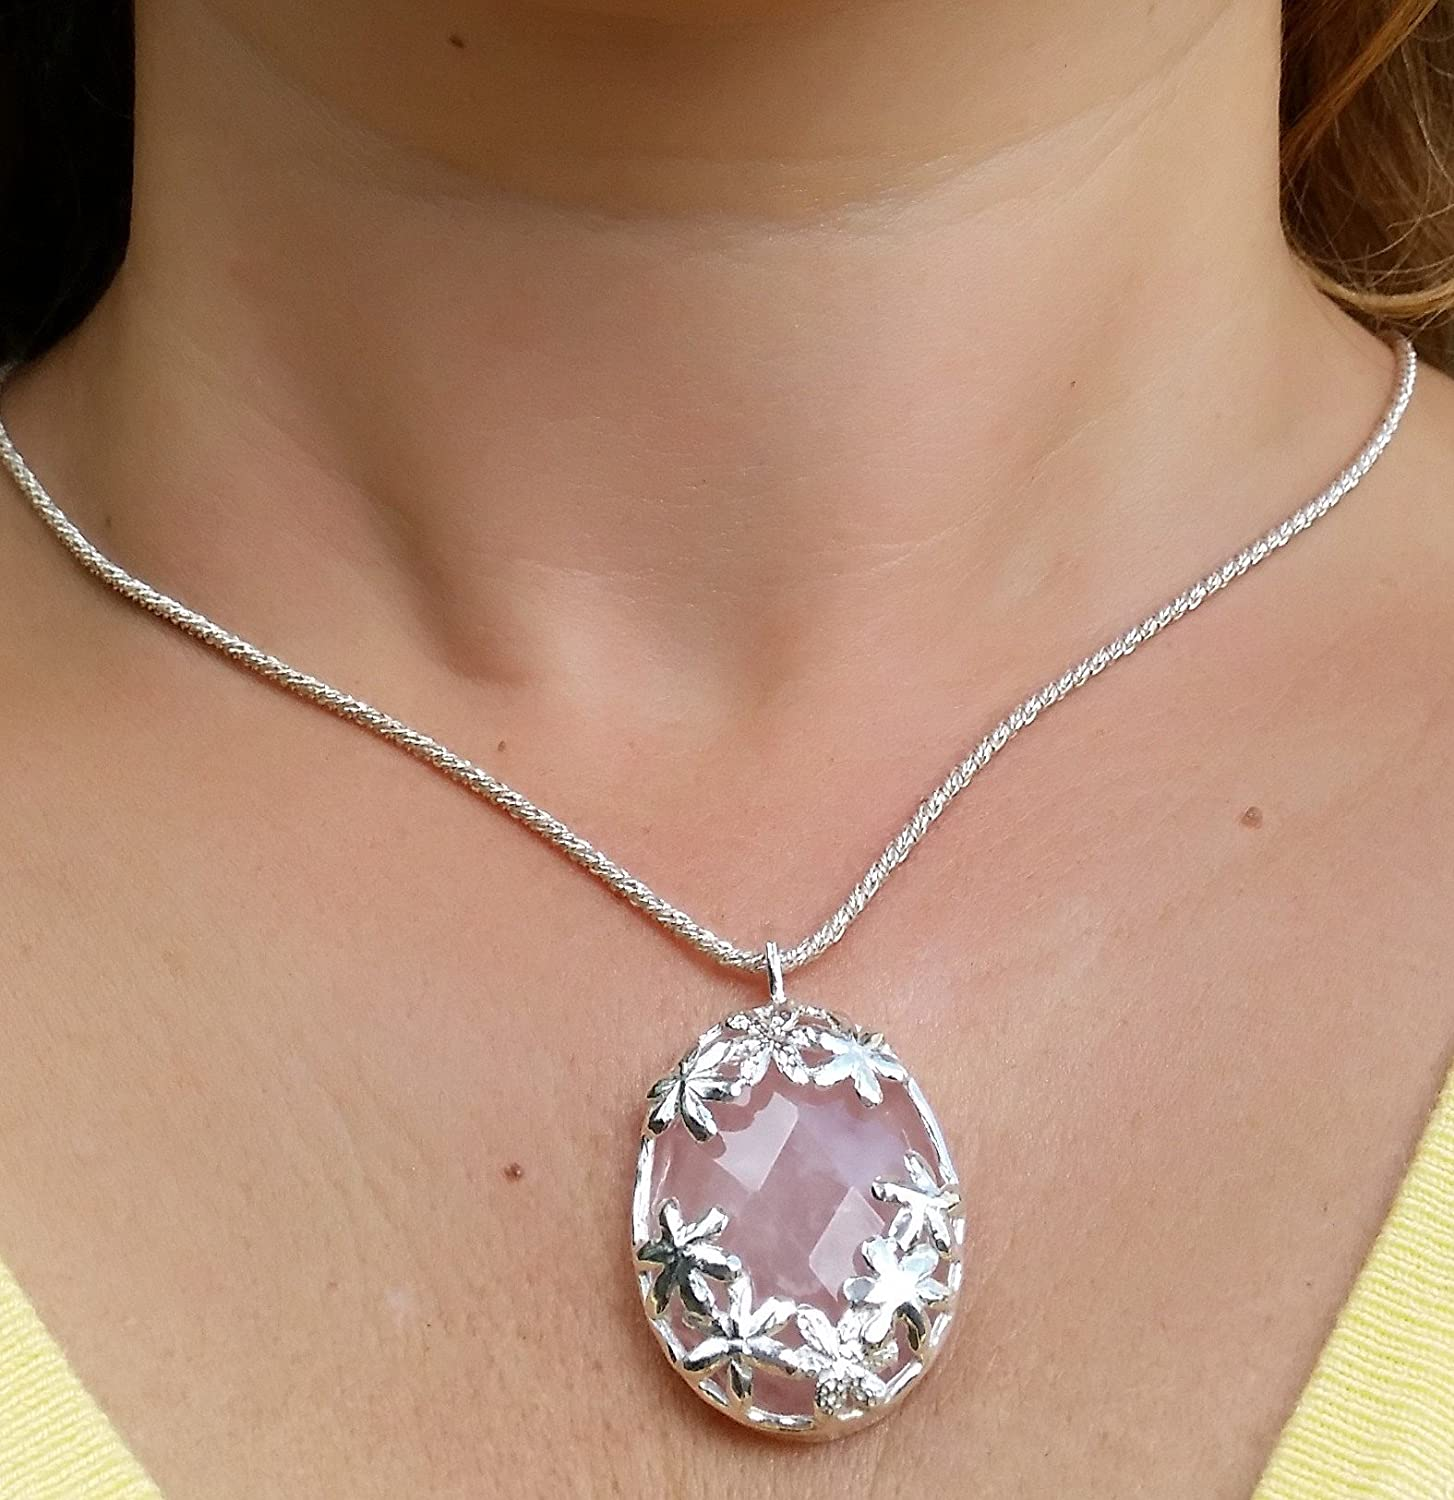 Natural Rose Quartz Gemstone Handcrafted Pendant Cabochon Oval Stone Boho Pendant,925-Sterling Silver Pendant,Gift For Her Etsy Cyber-2019